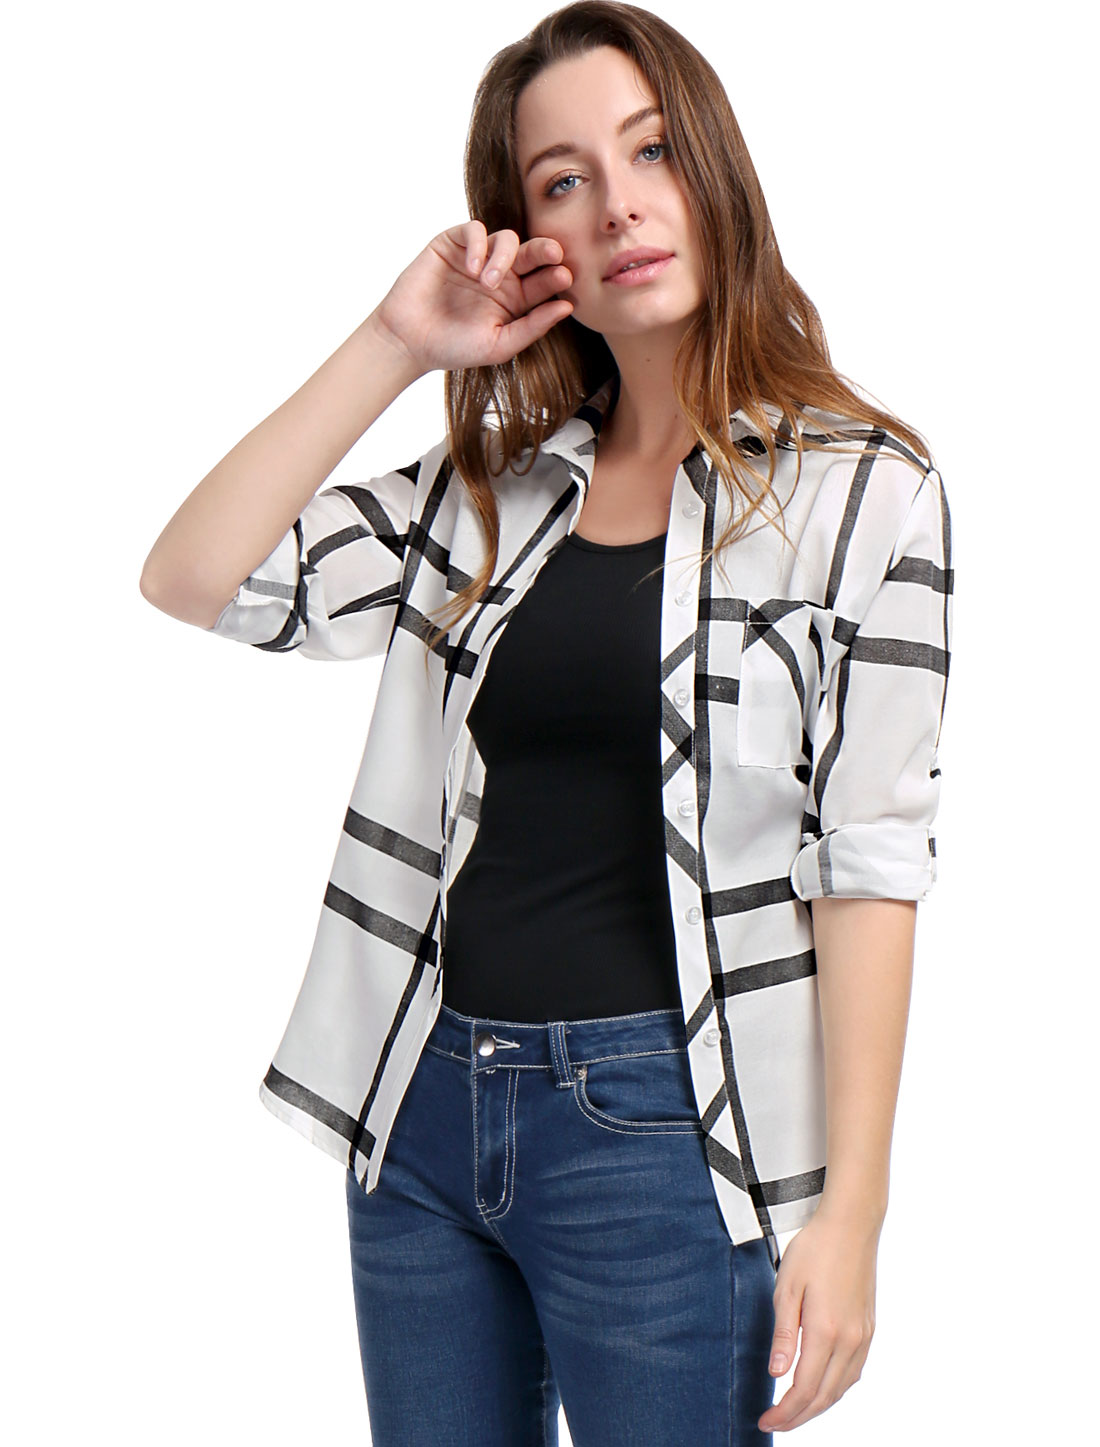 Women Roll Up Sleeves Buttoned Tunic Plaid Shirt Black XS